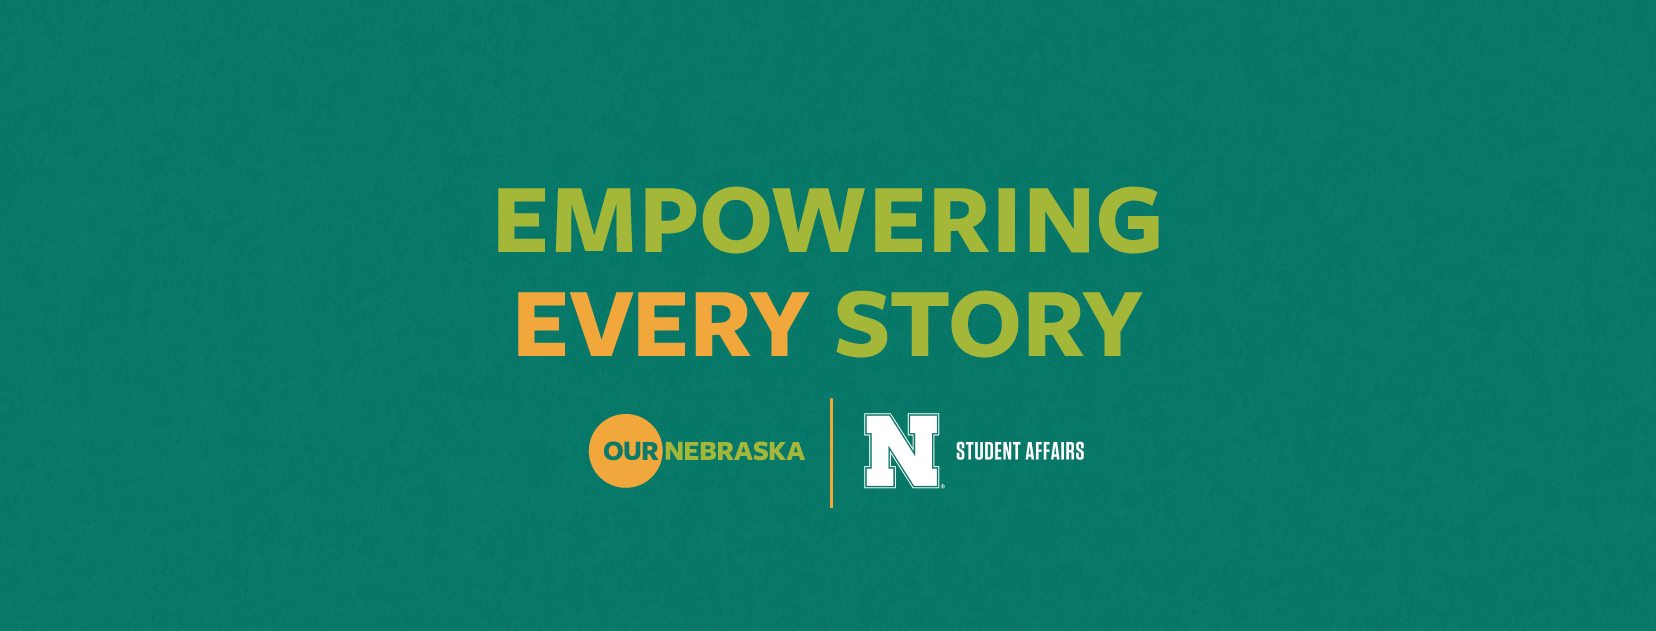 Our Nebraska Empowering Every Story